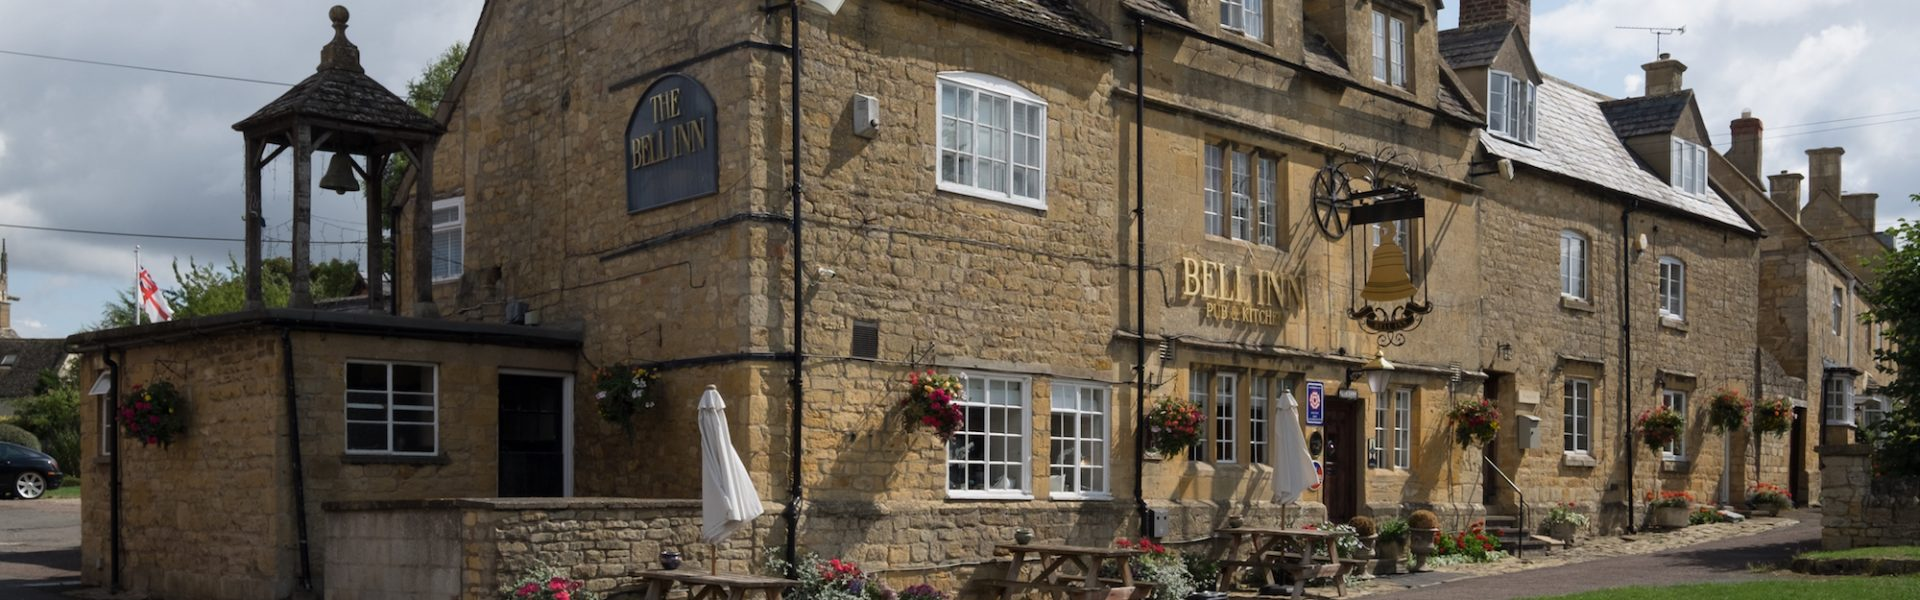 The Bell Inn, Willersey